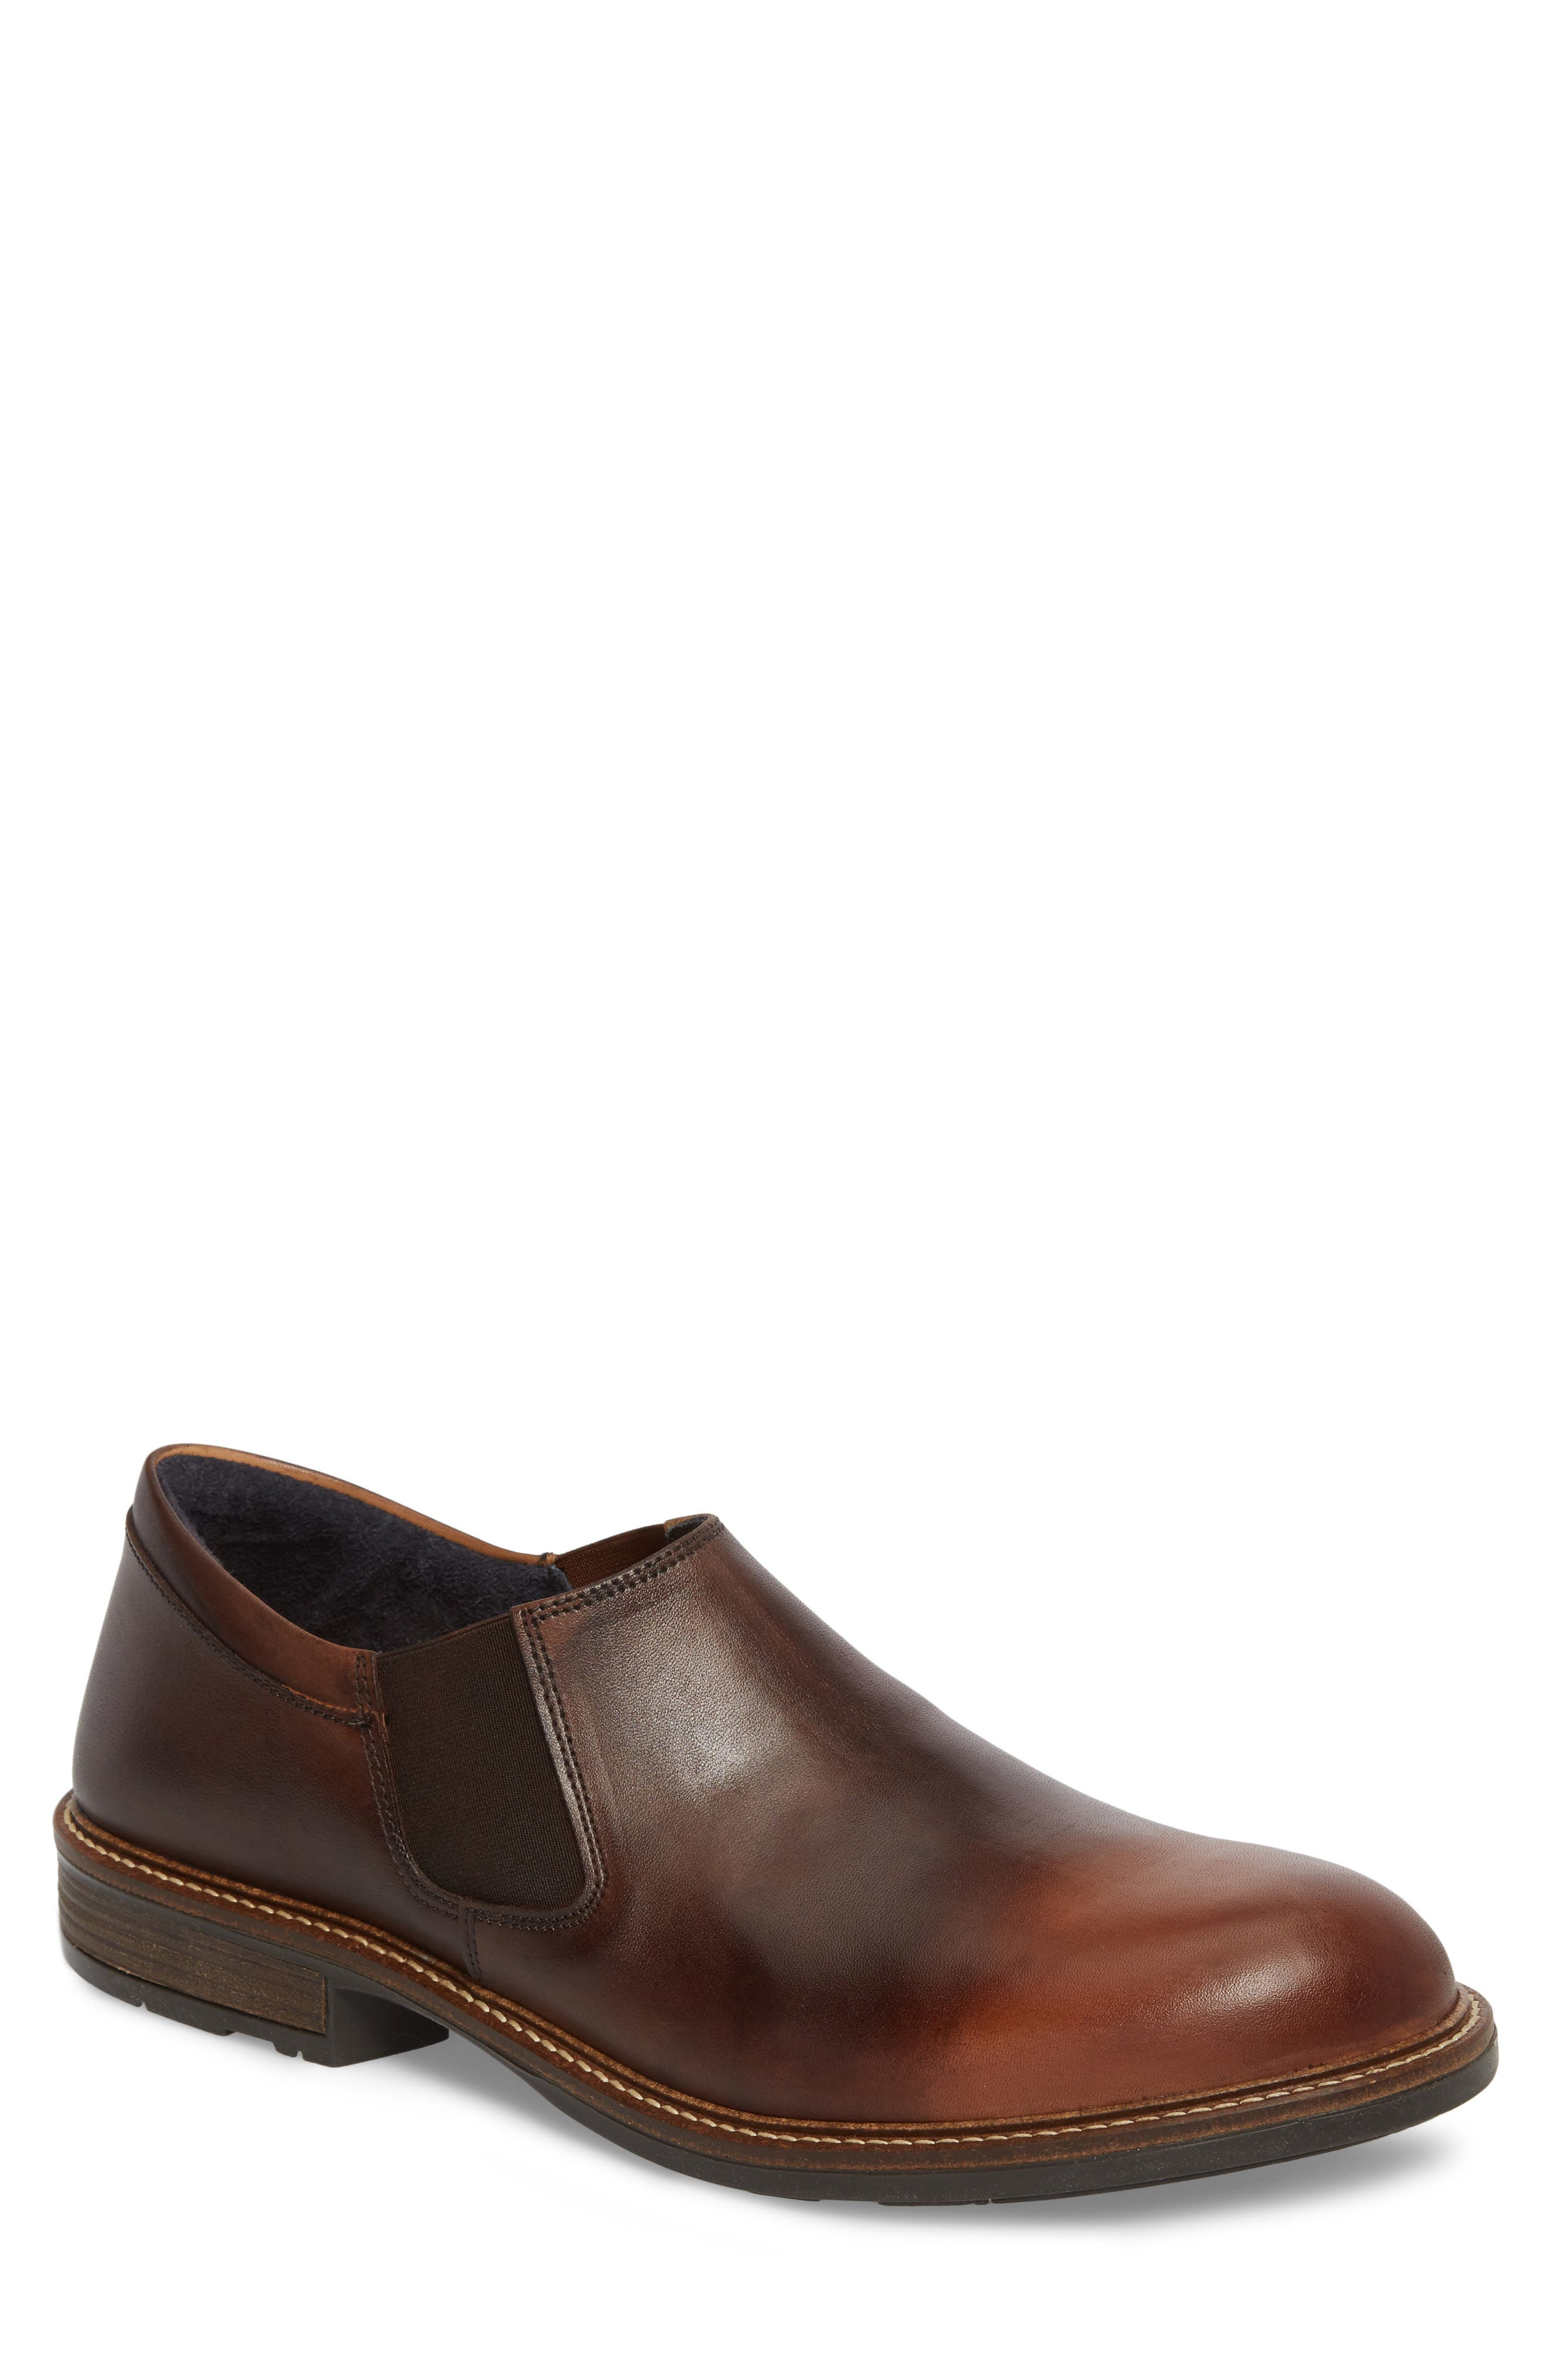 Director Venetian Loafer,                             Main thumbnail 1, color,                             BROWN GRADIENT LEATHER